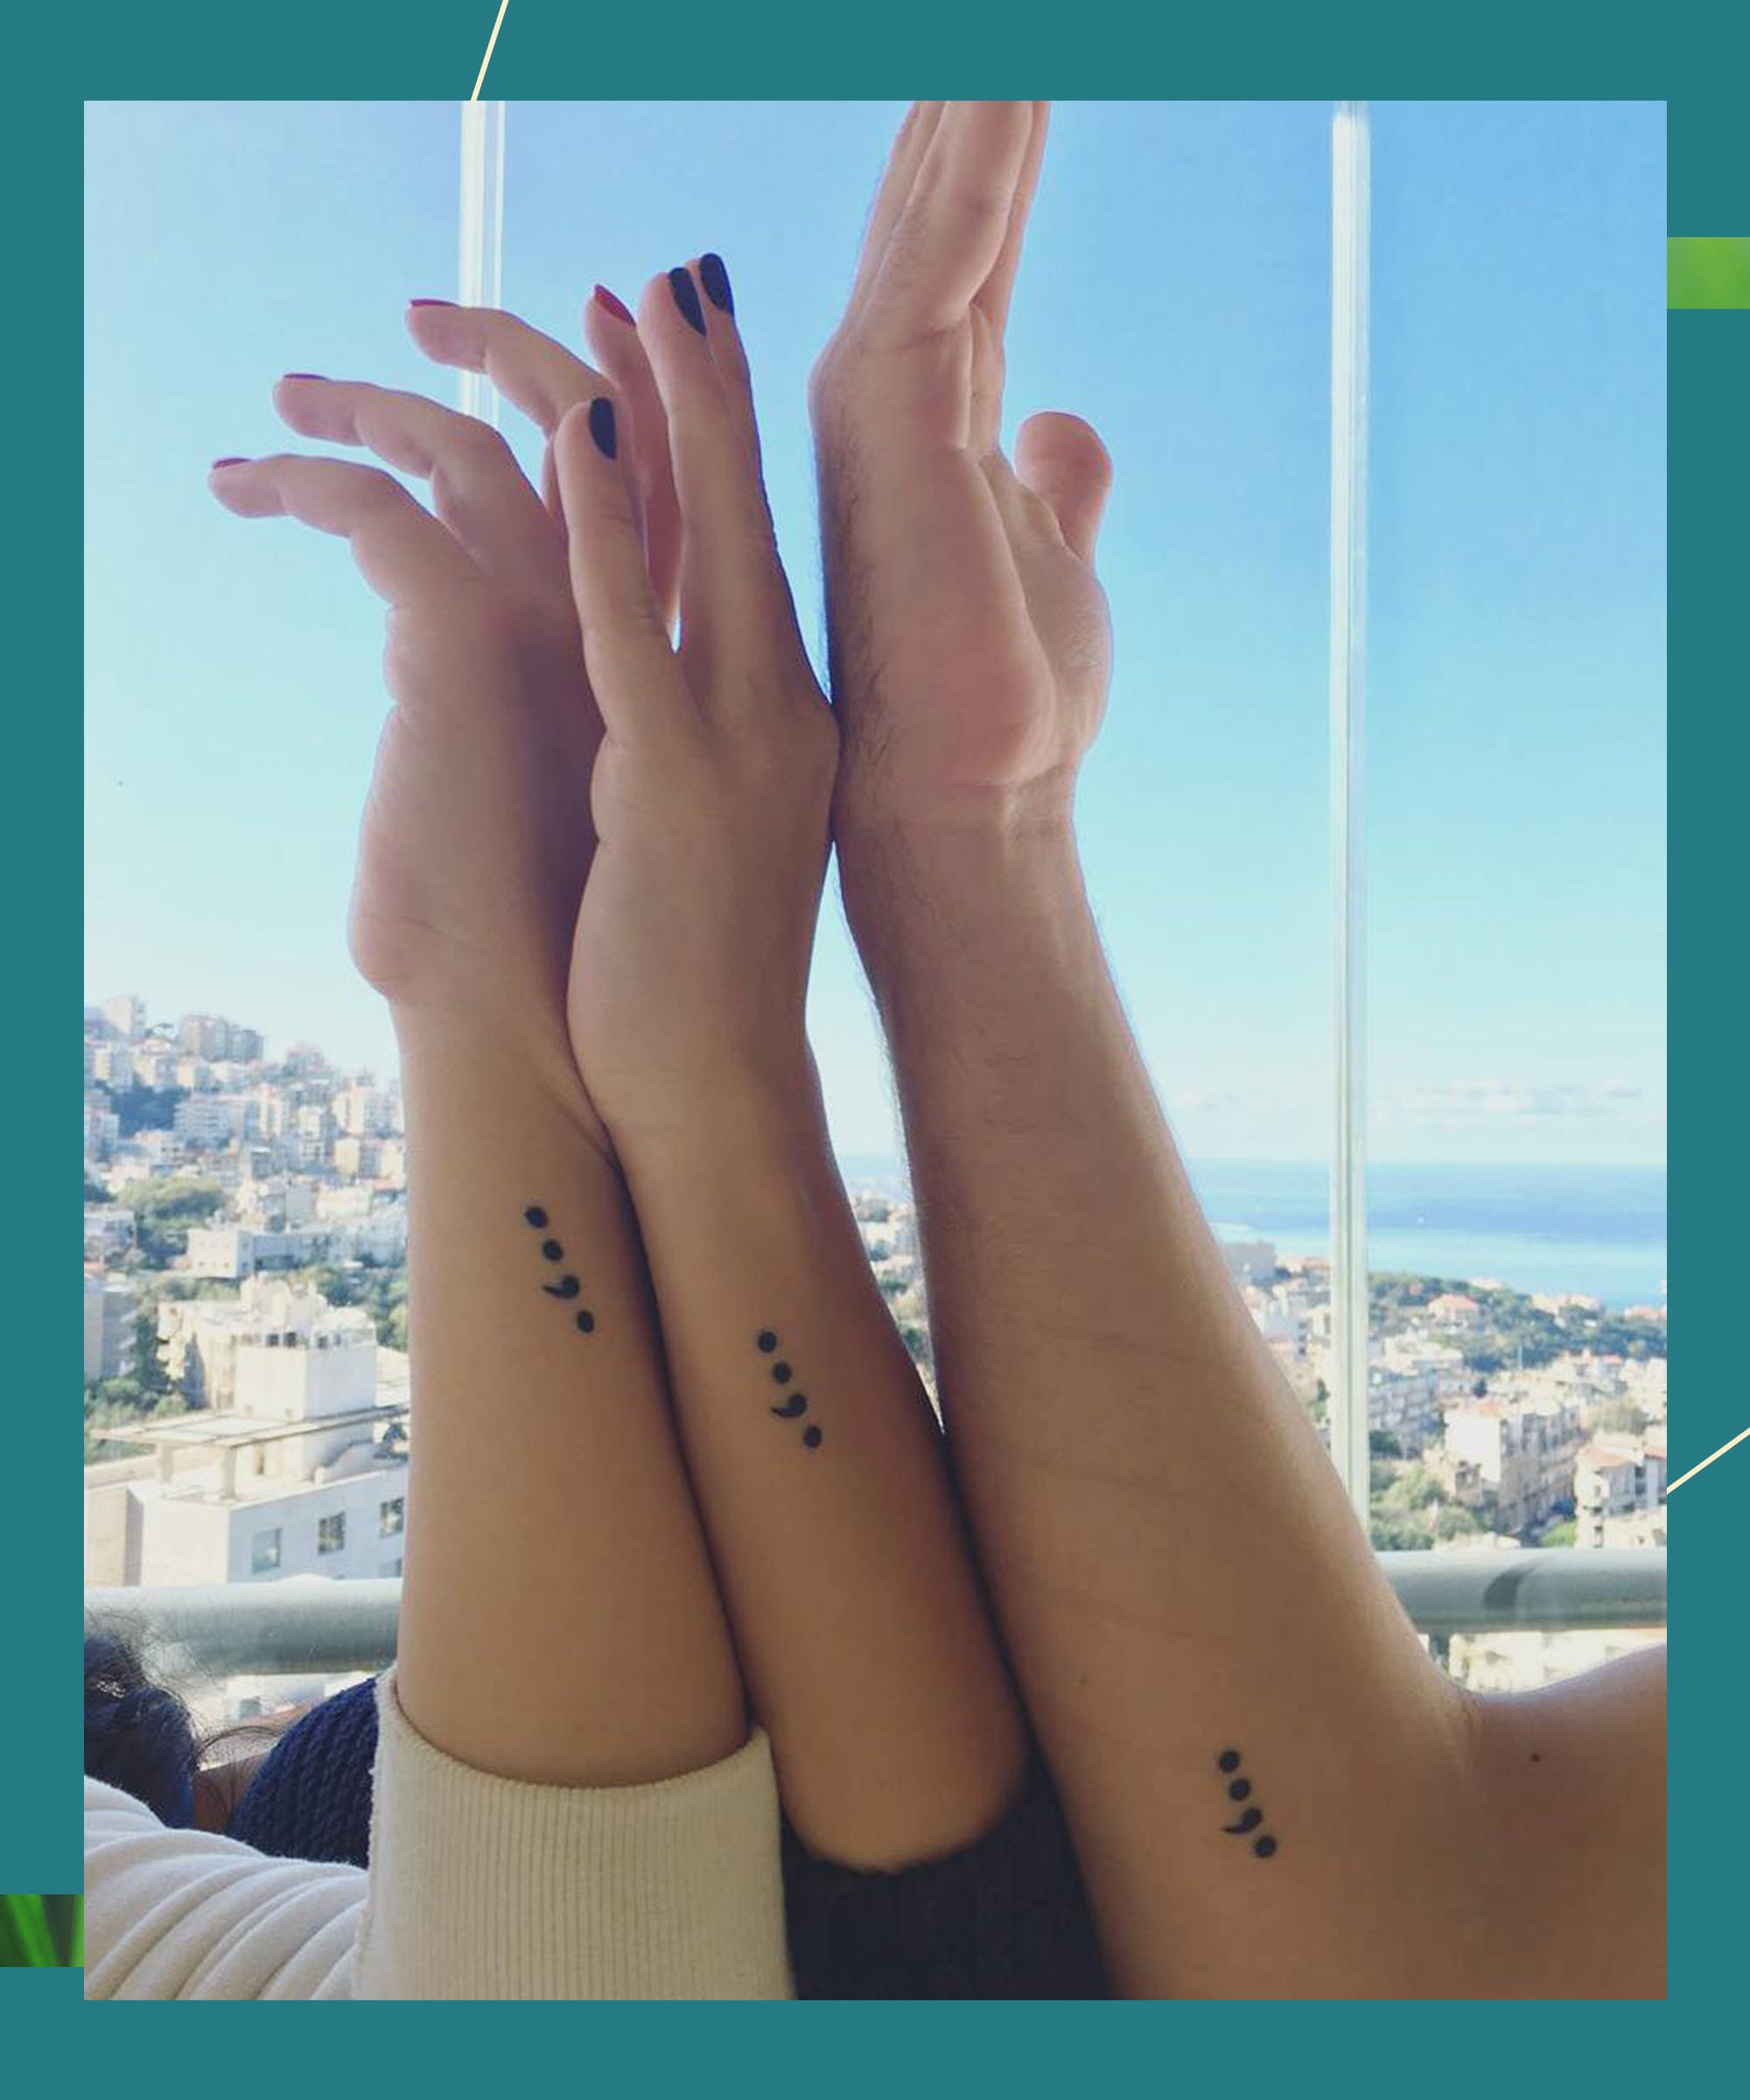 Best Family Tattoo Ideas & Designs That Are Not Tacky